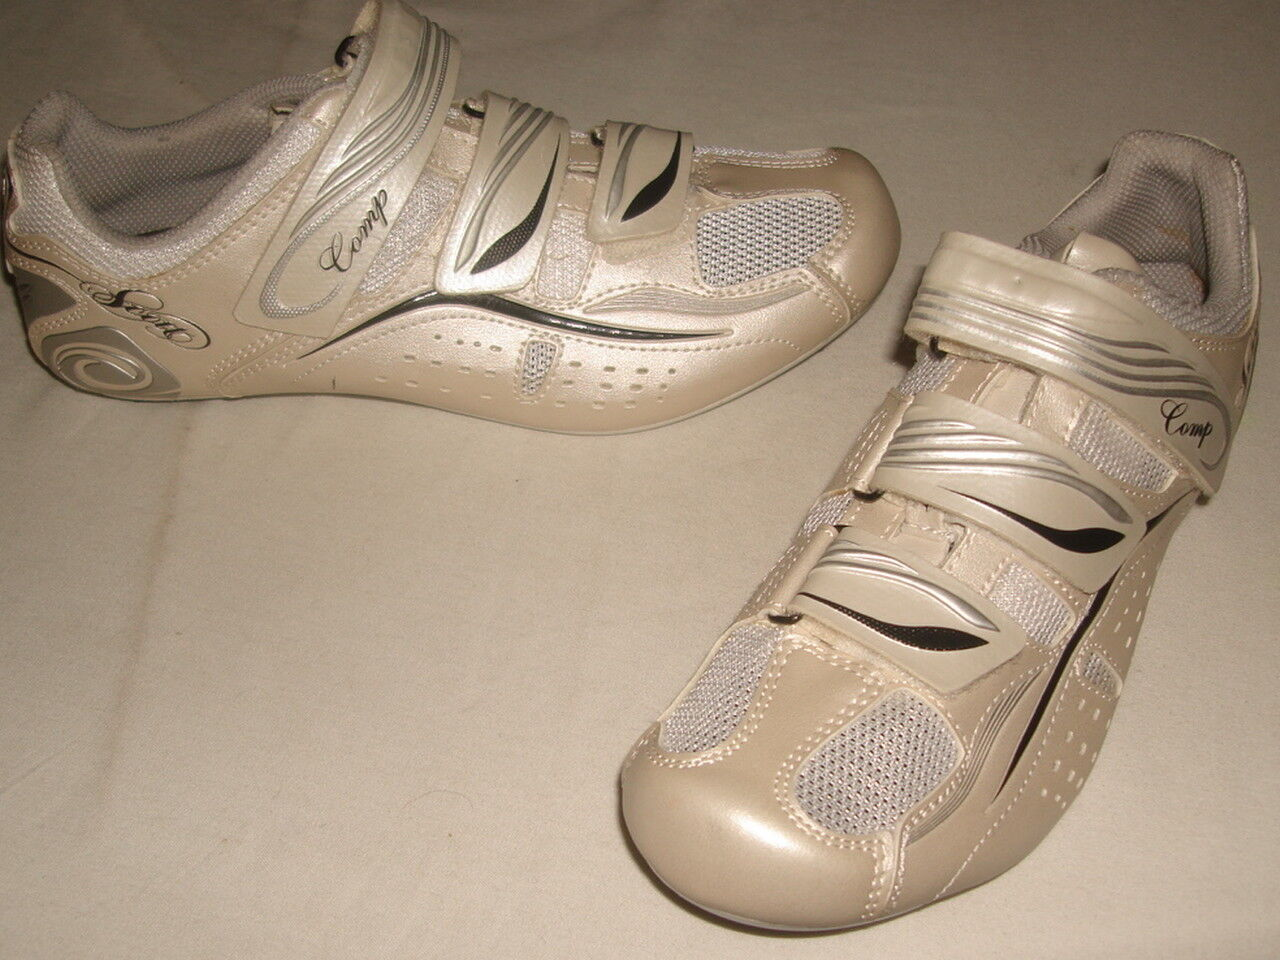 NWOB Scott Comp Champagne Wht. Lady Women's Road  Cycling shoes Sz. US 6.5  low 40% price